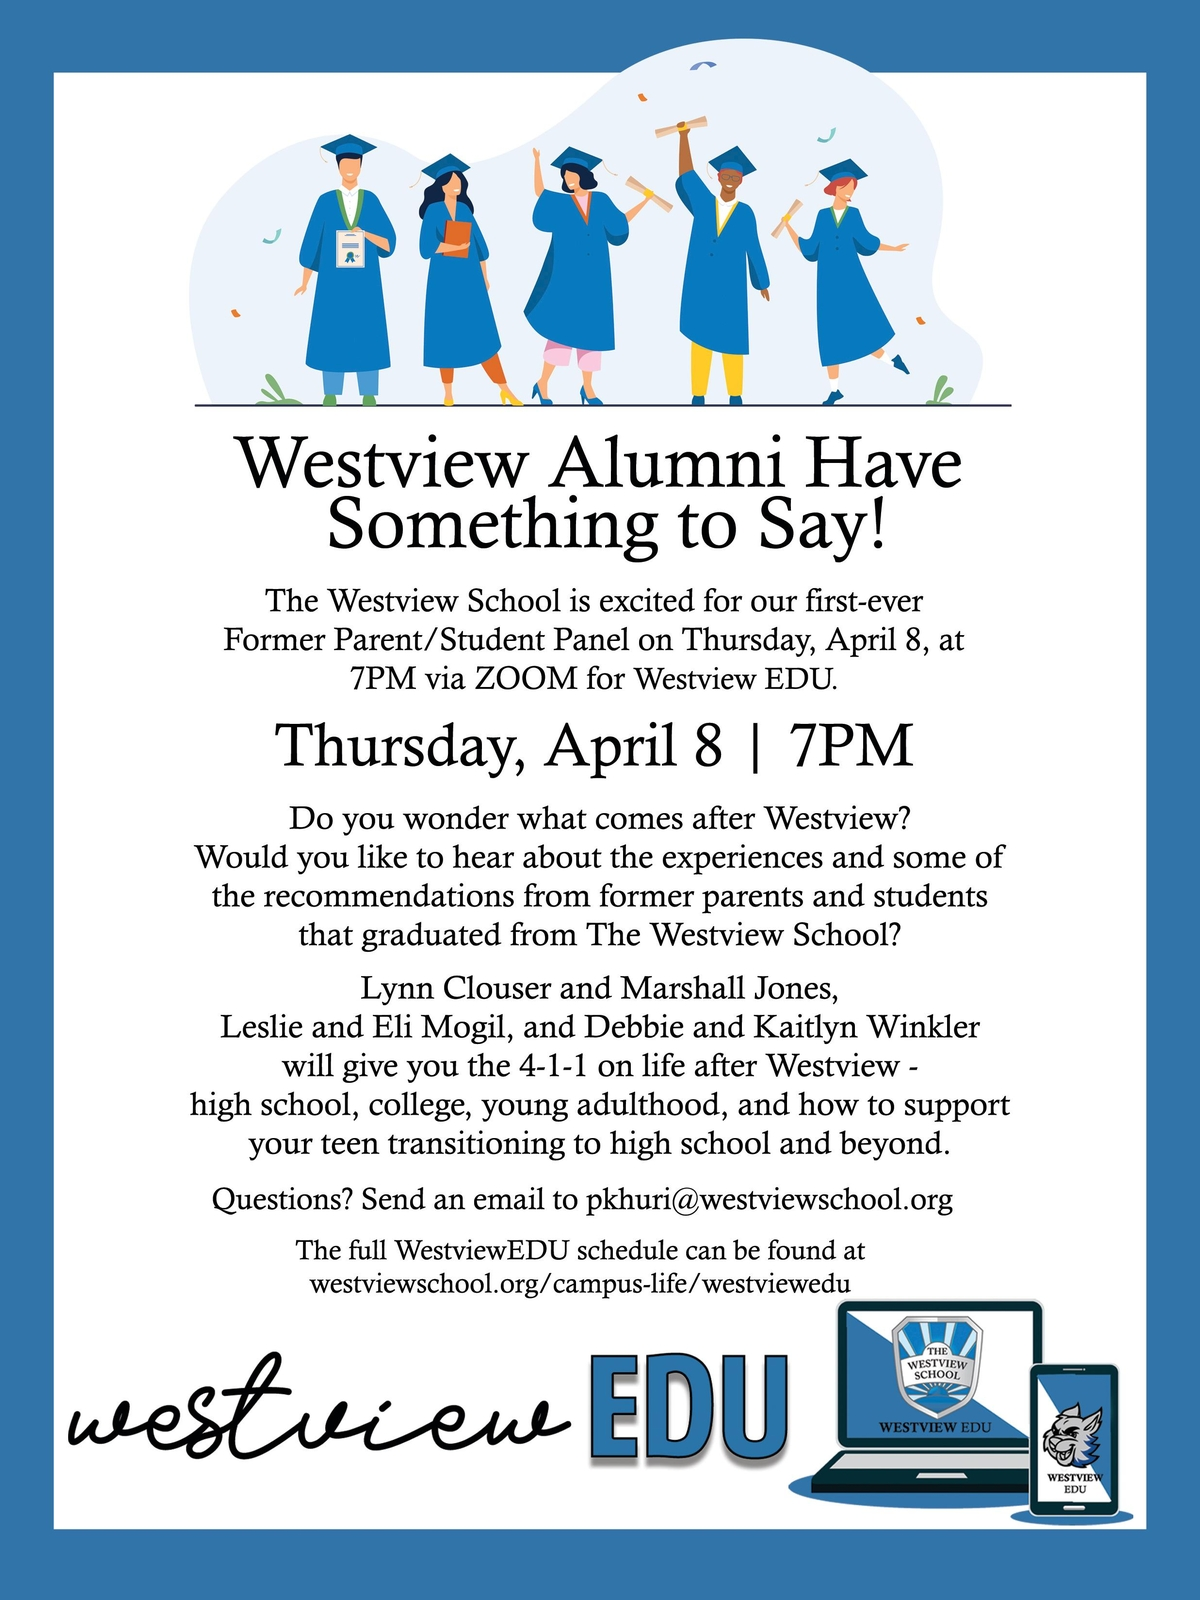 WestivewEDU: Westview Alumni Have Something to Say